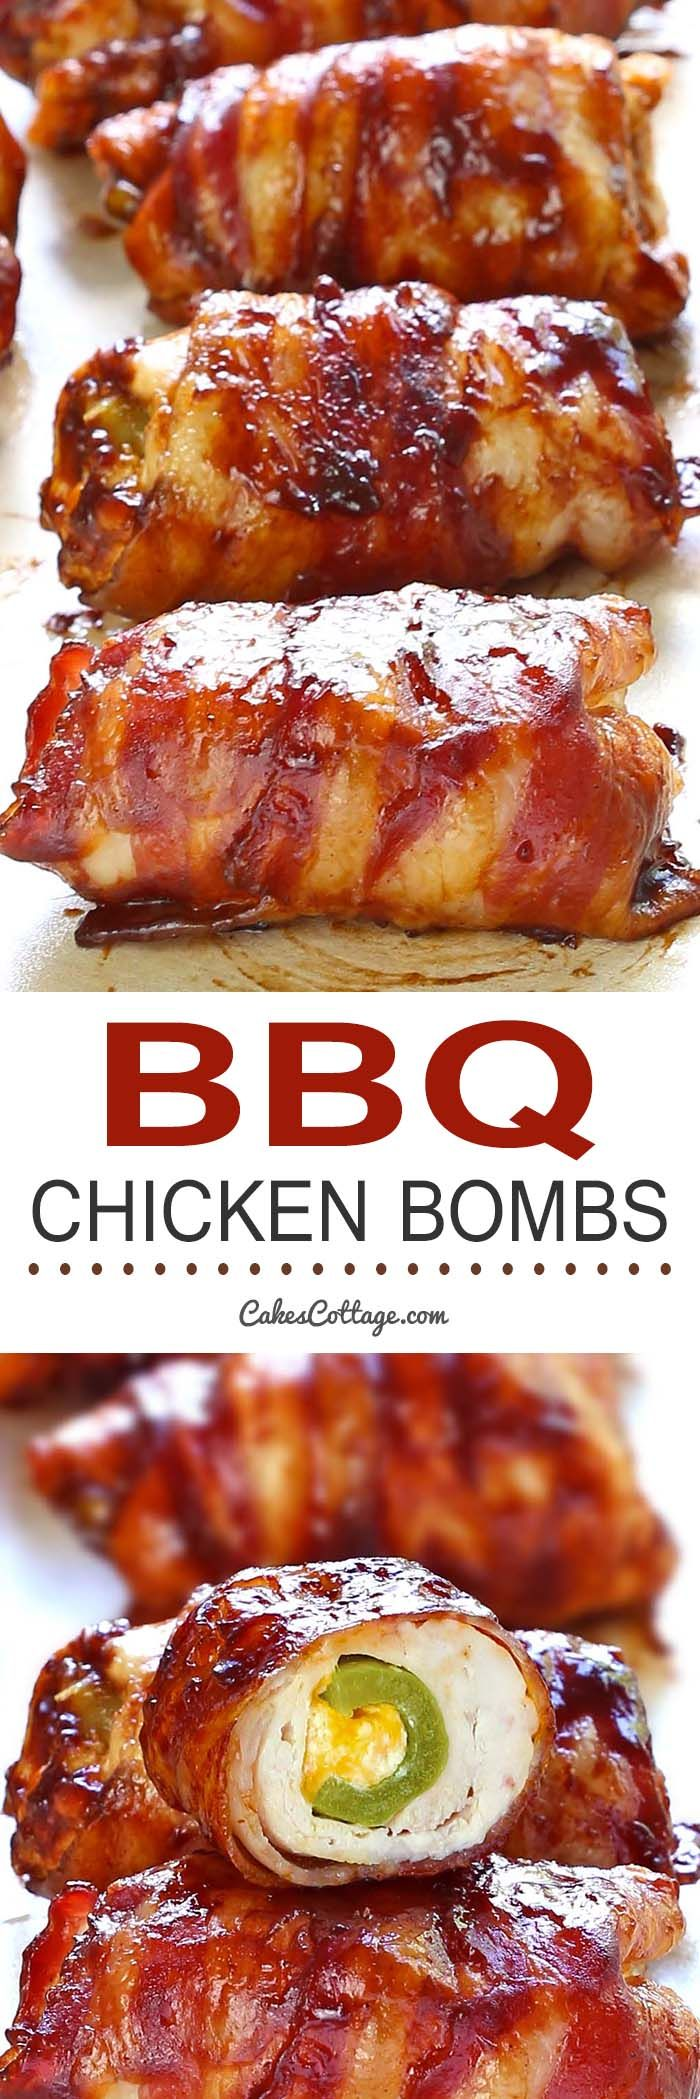 Get your tastebuds ready for a Bacon BBQ Chicken Bombs, it has chicken, cheese, bbq sauce, bacon and jalapeno…and yes, its as